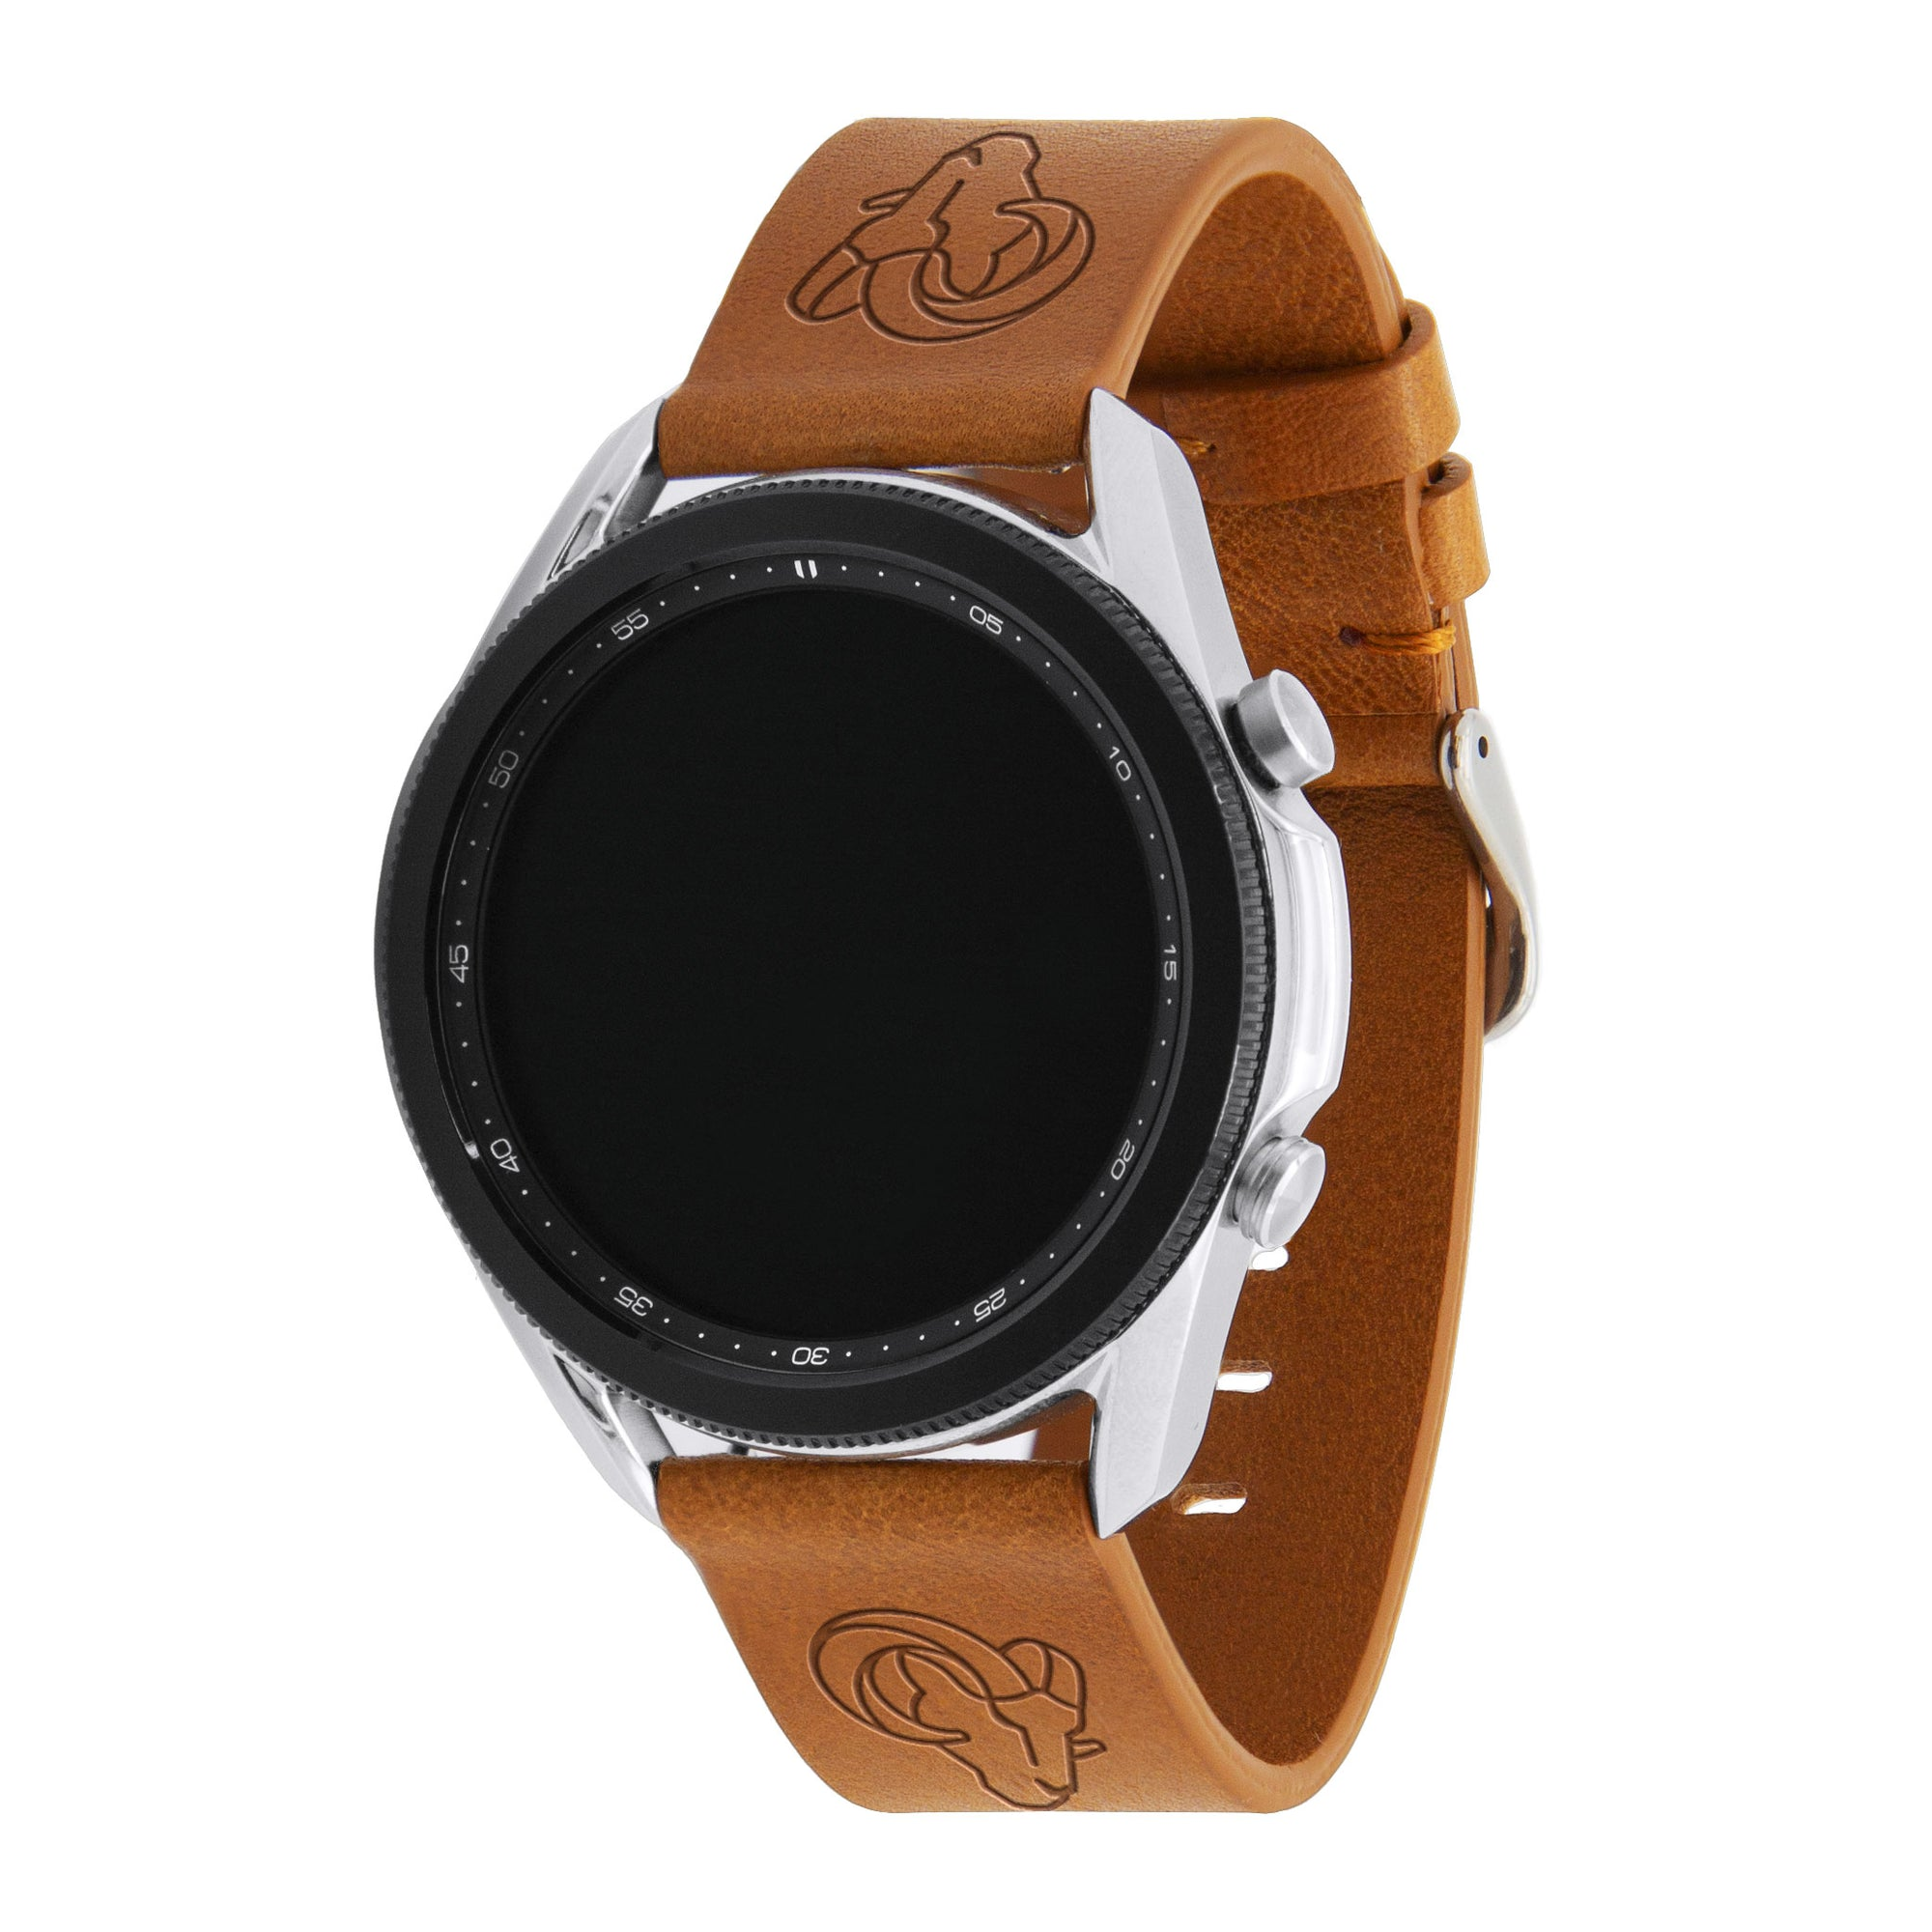 Los Angeles Rams Quick Change Leather Watch Bands - AffinityBands